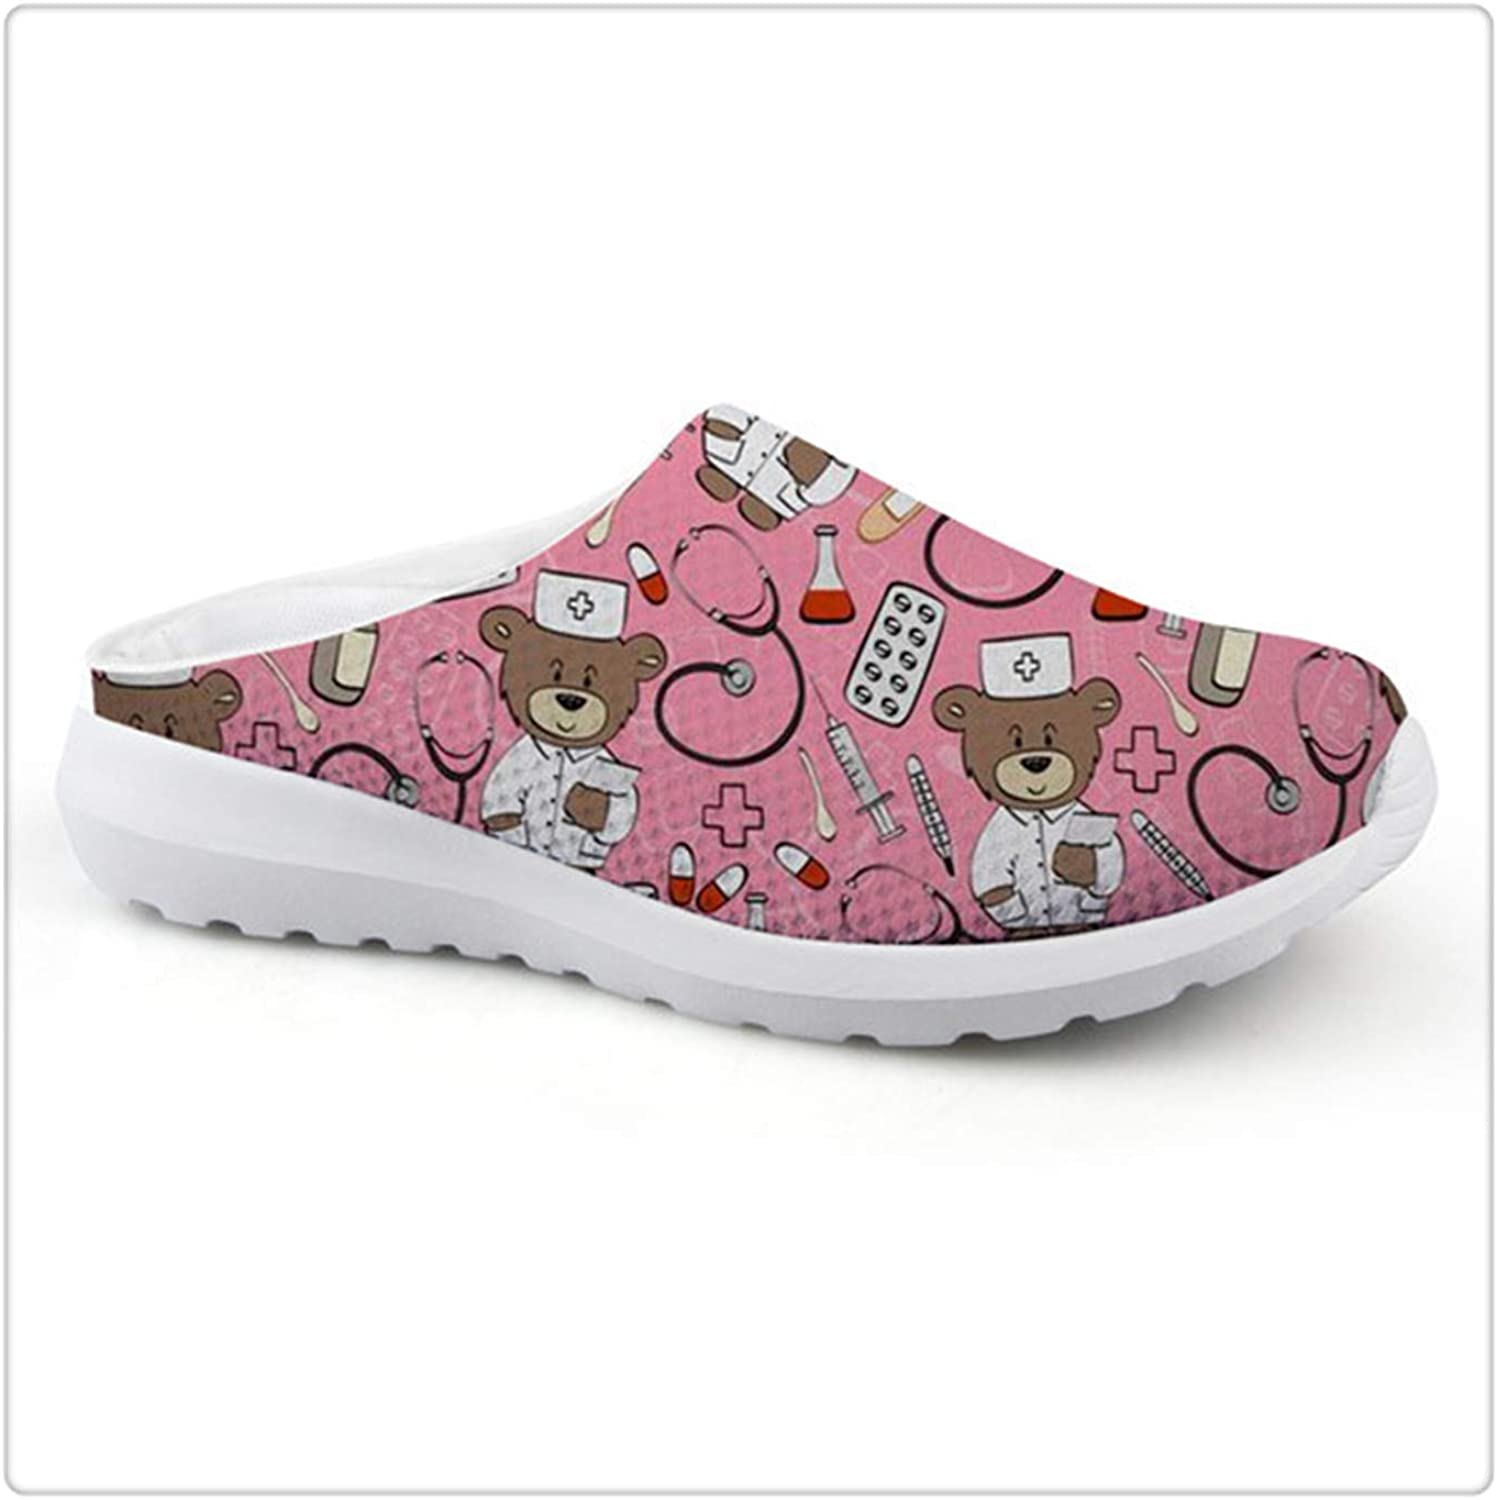 NNHLPO& Cute Nurse Bear Print Casual Slip-on Women's Sandals Home Mesh Female Flats